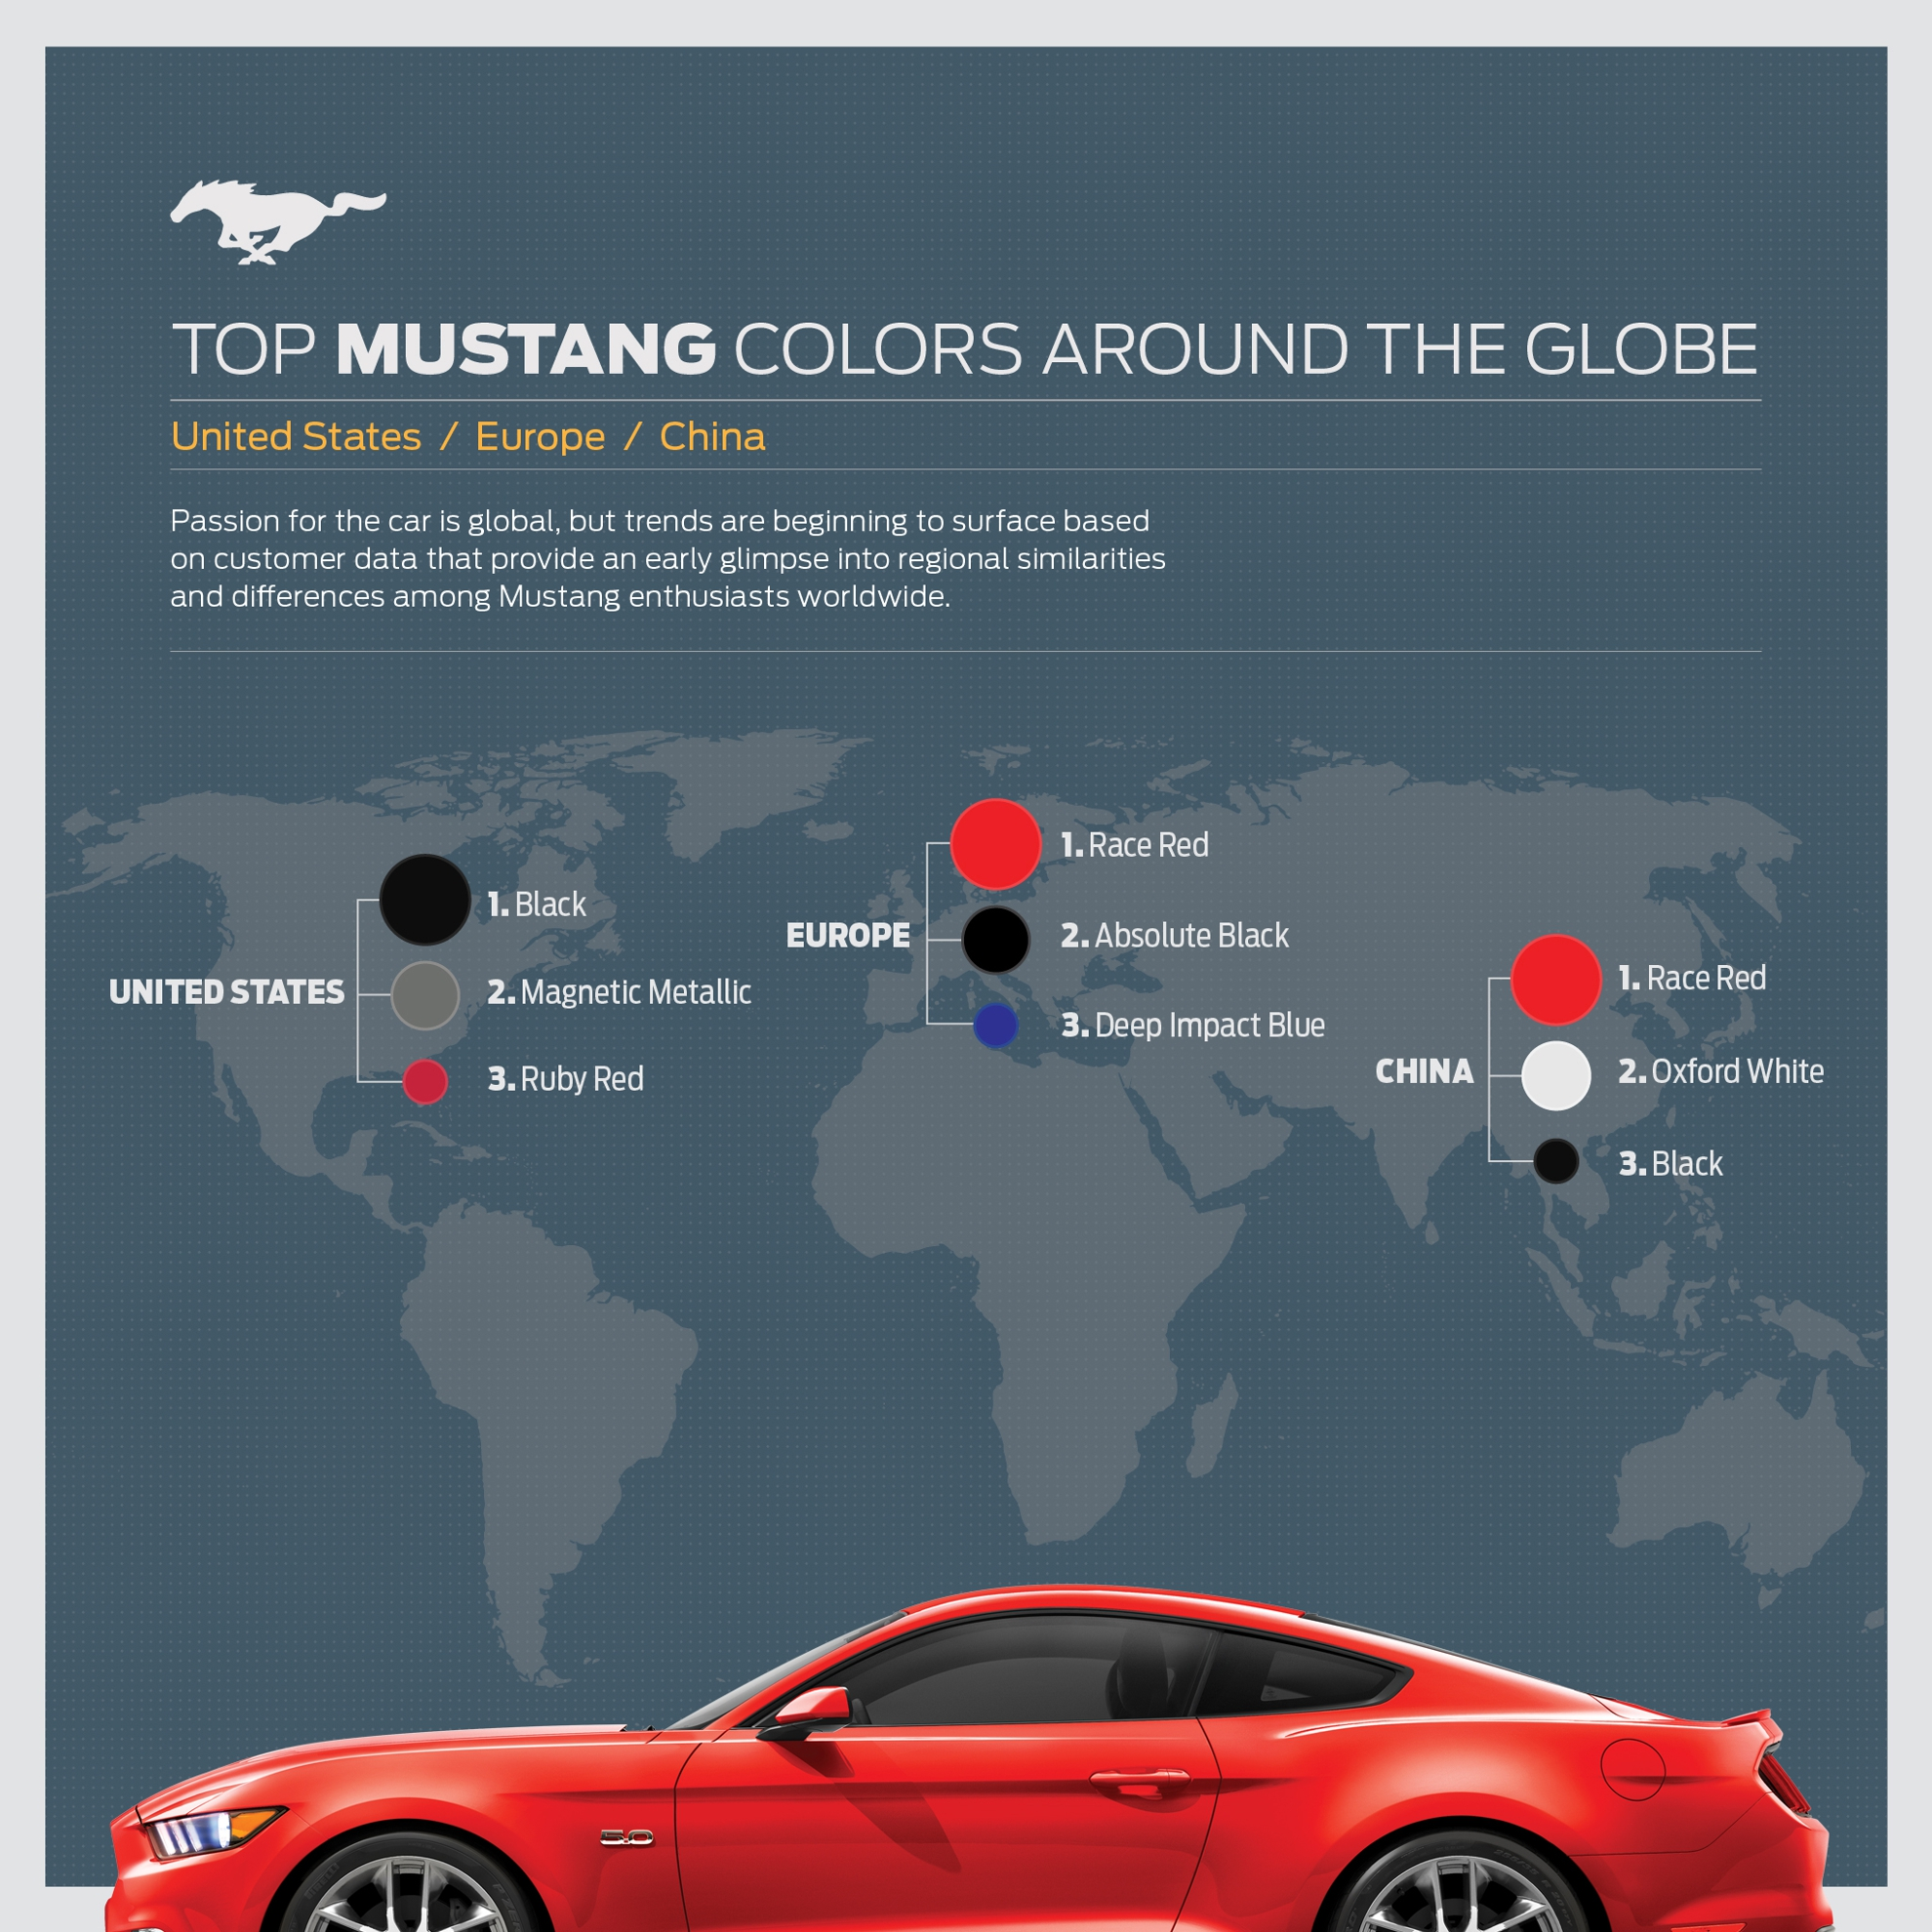 Ford-Mustang-Favorite-Colors